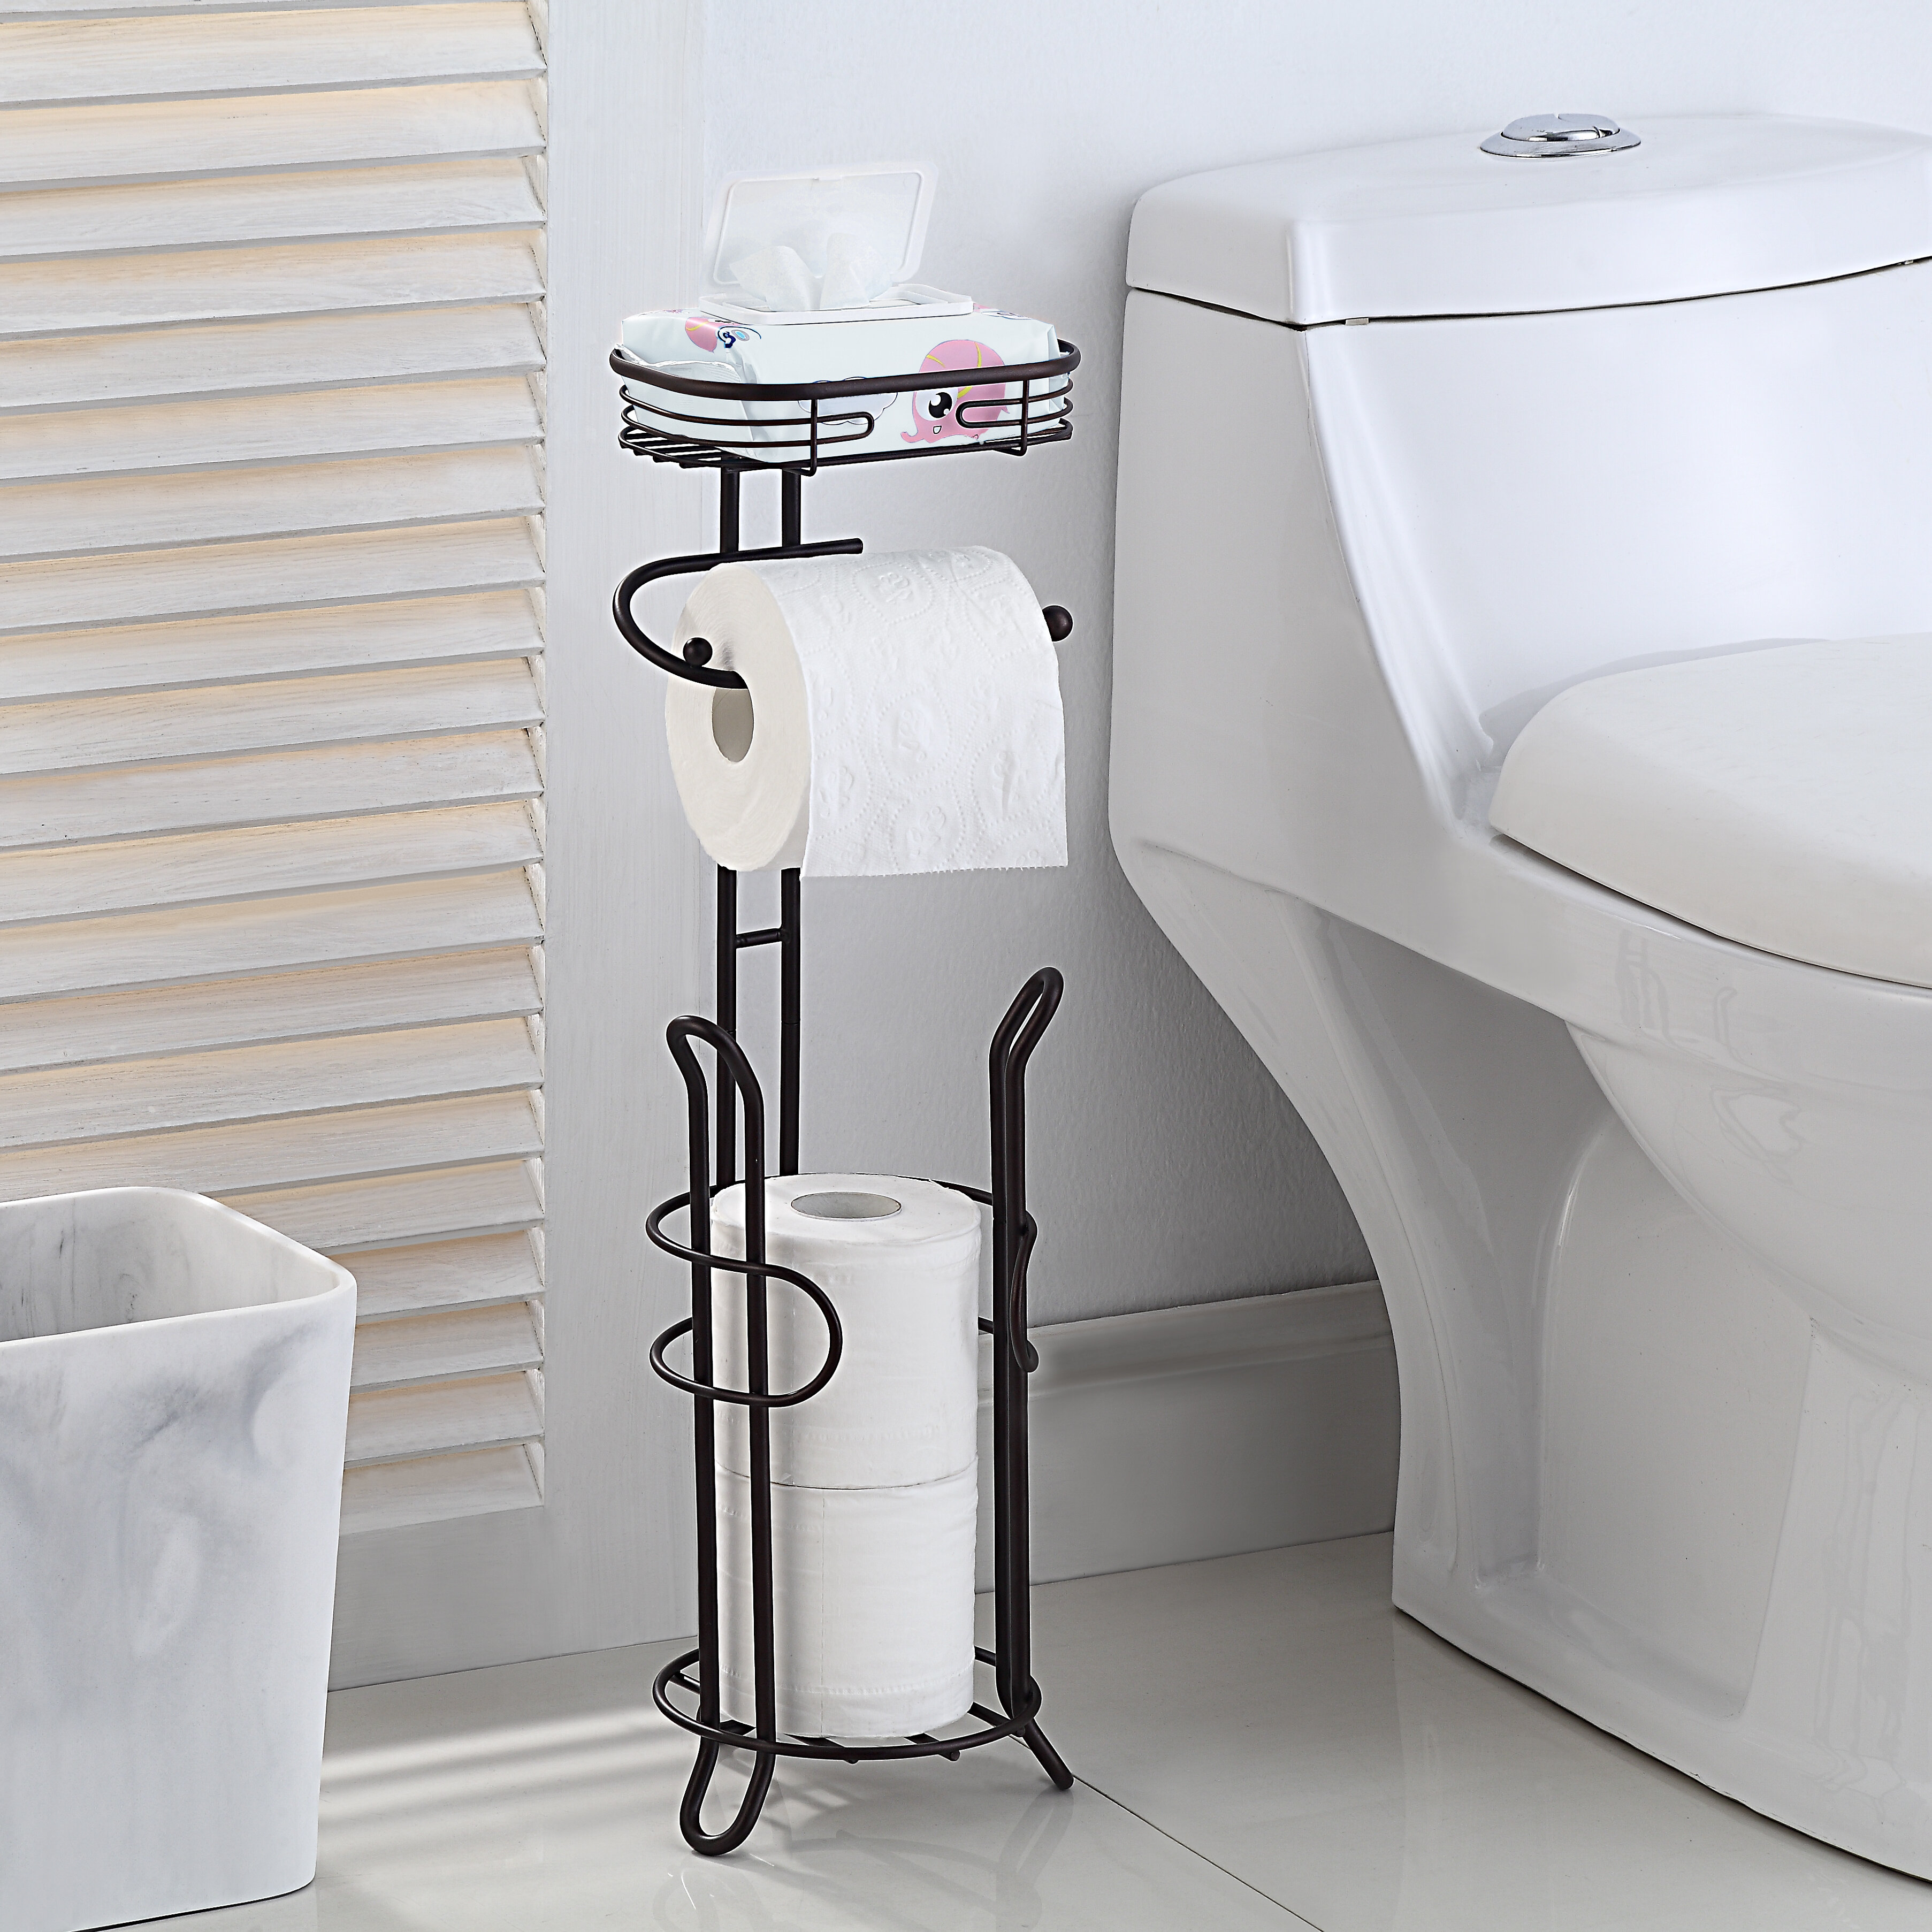 3 Roll Toilet Paper Holders You Ll Love In 2021 Wayfair